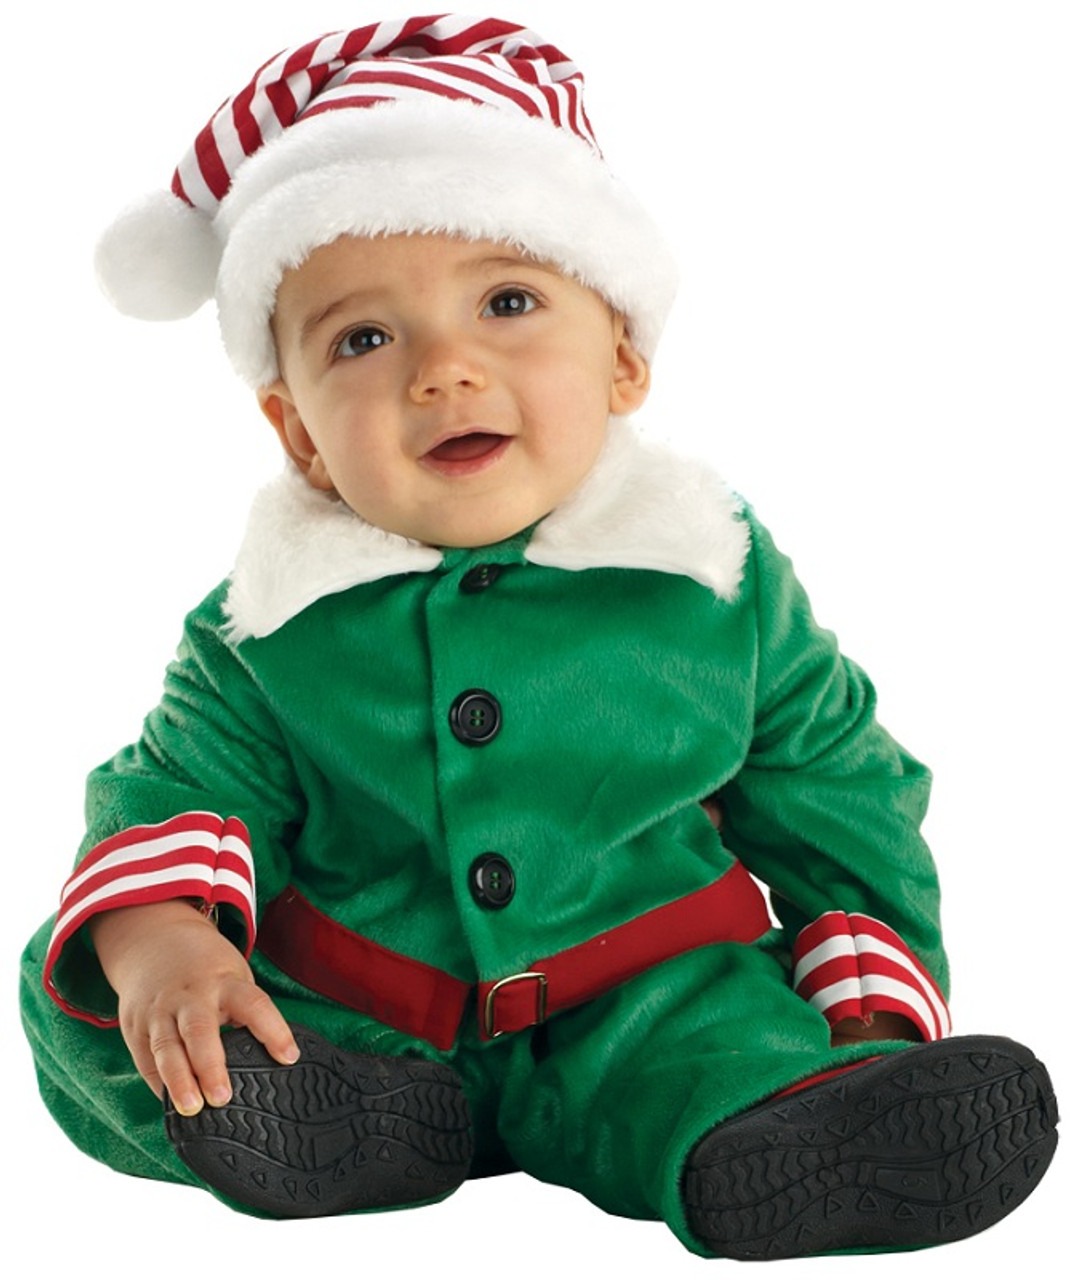 Toddler Elf Costume  sc 1 st  Halloween Express & Toddler Elf Costume - Halloween Express